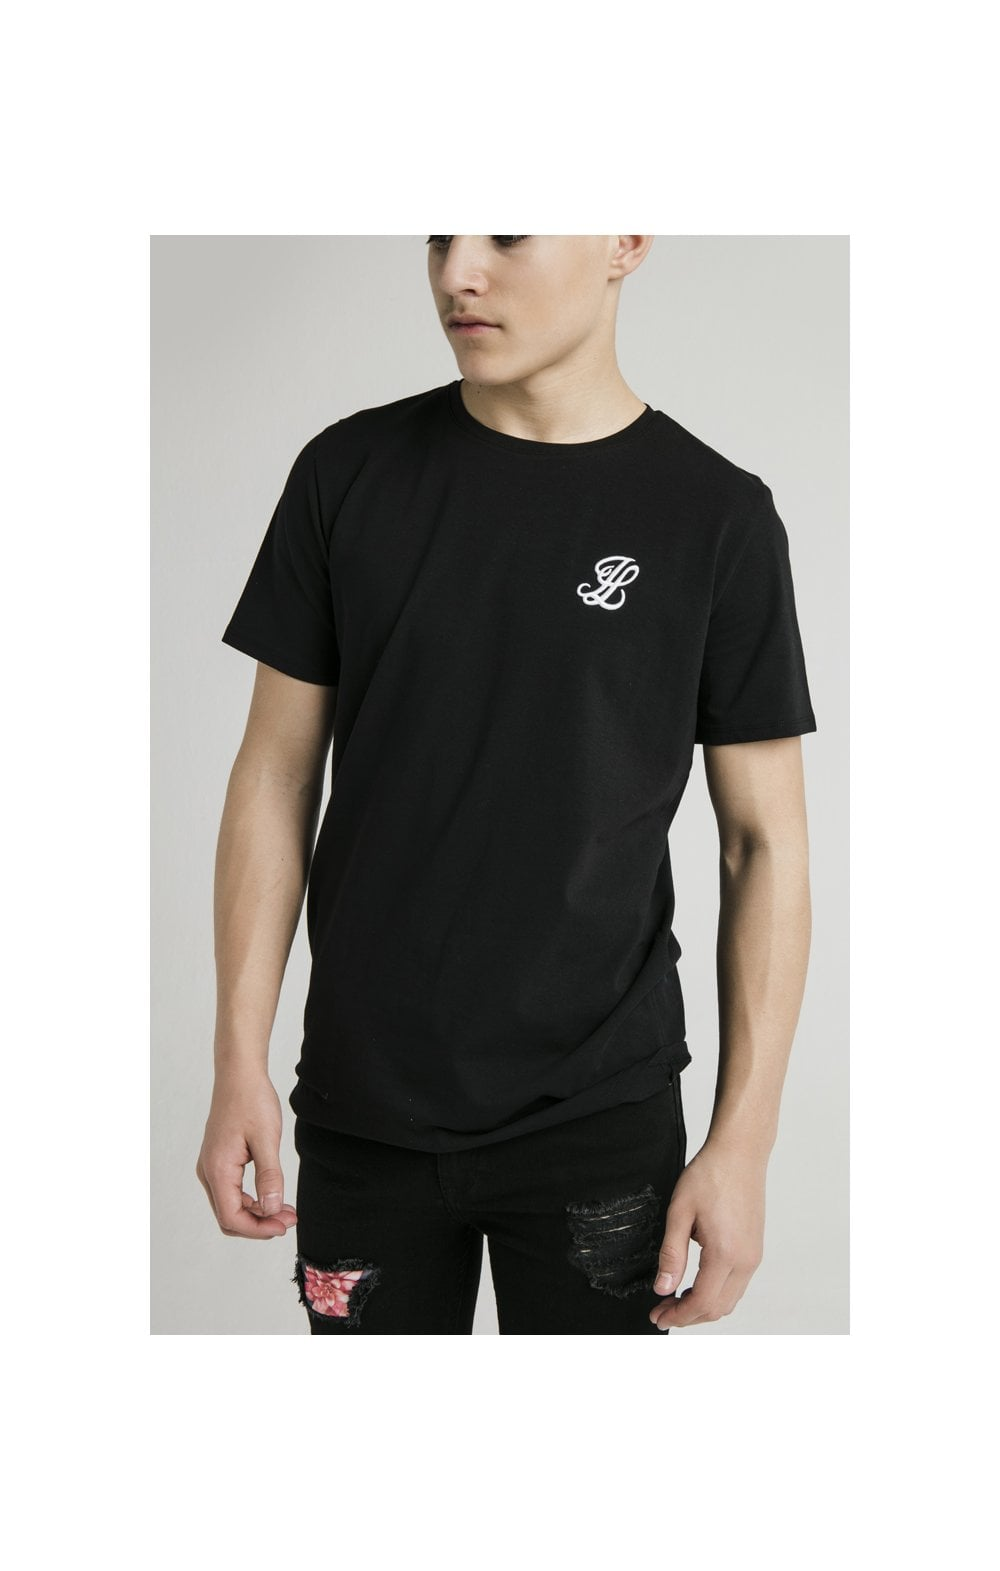 Load image into Gallery viewer, Illusive London S/S Core Tee - Black (1)